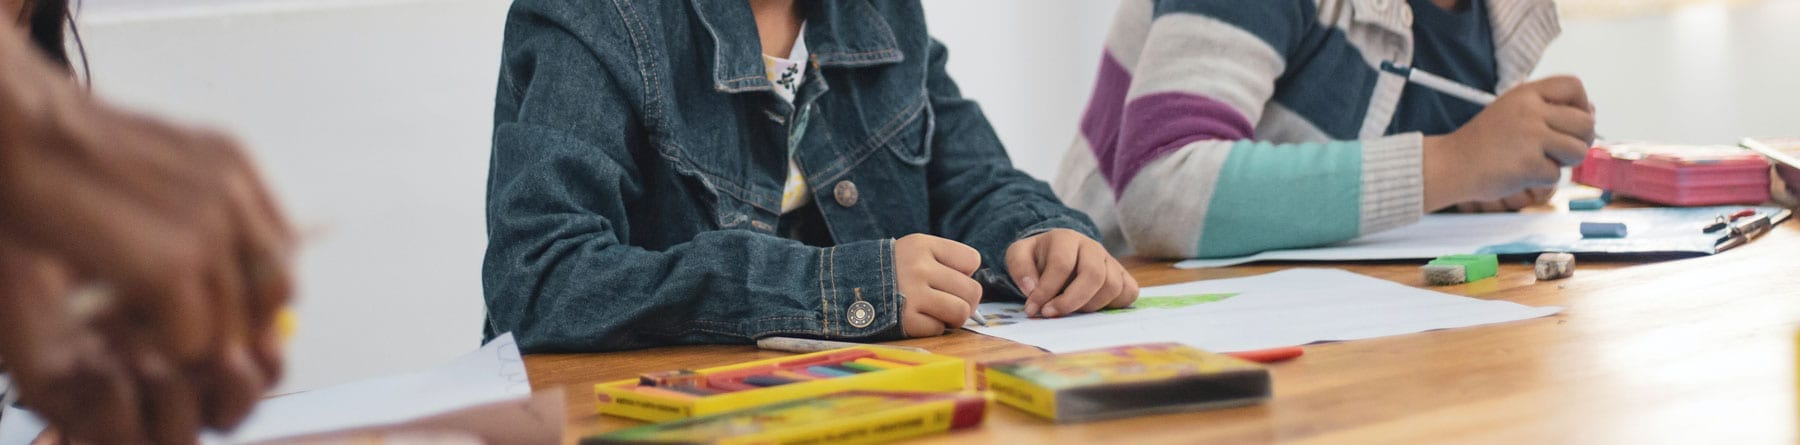 4 Back to School Safety Tips to Keep Your Student Safe